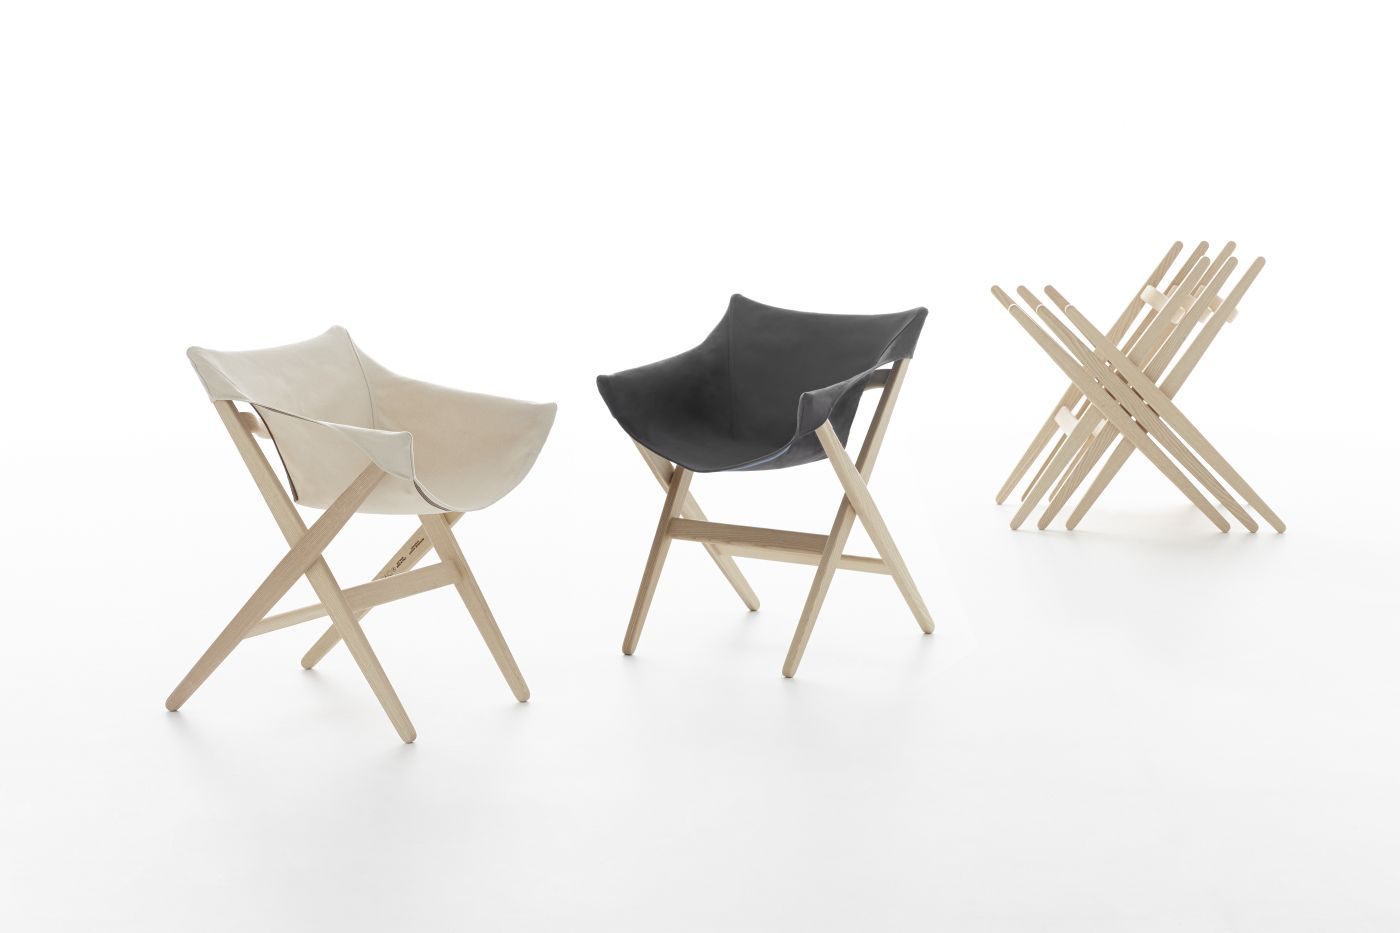 Contemporary Dining Chair Stackable Wooden By Jasper Morrison FIONDA Mattiazzi